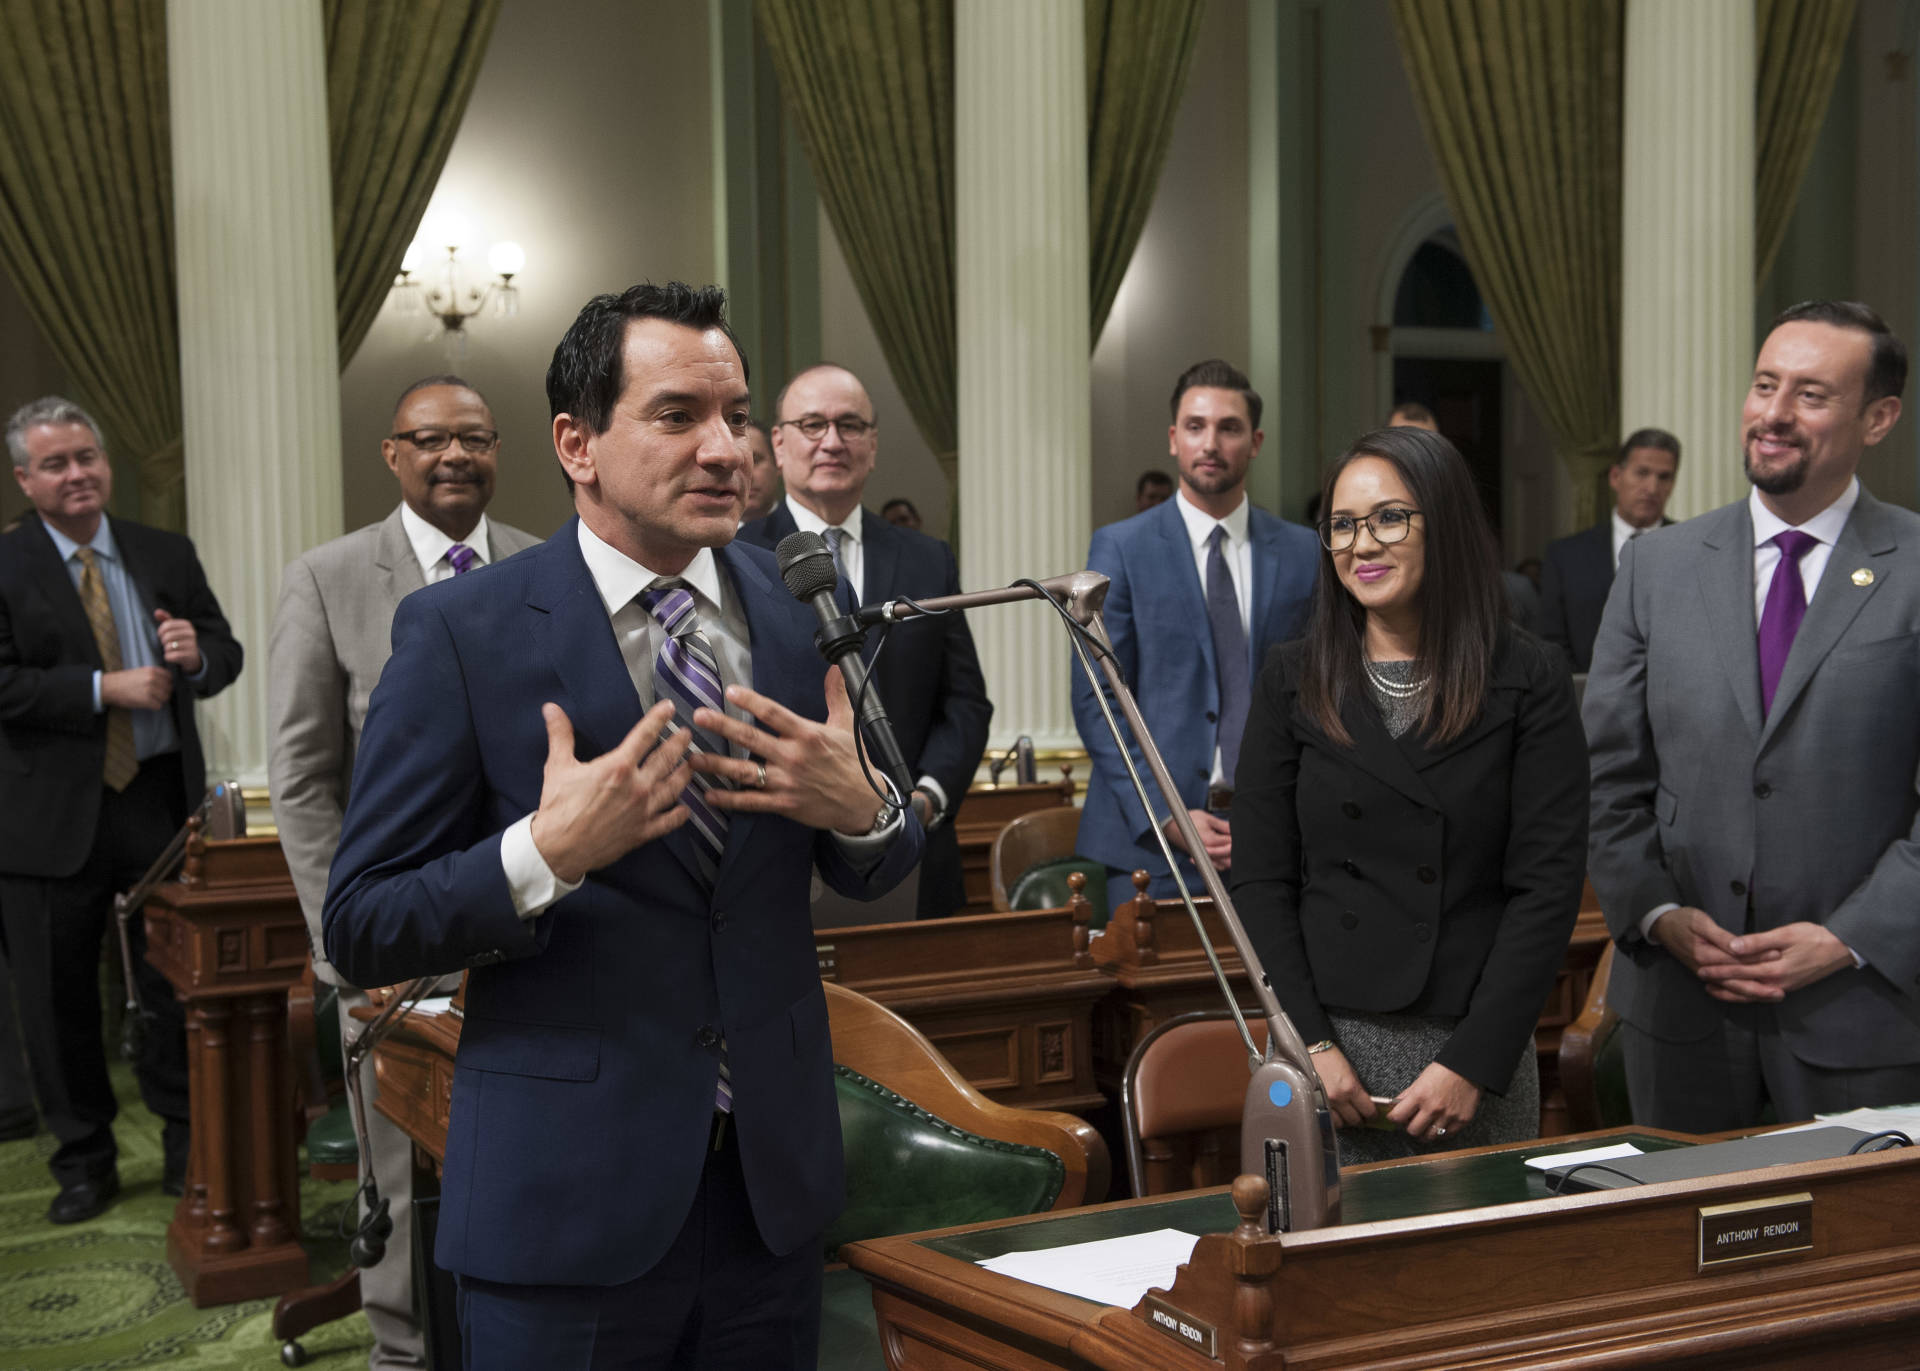 Assembly member Anthony Rendon speaks after being elected Speaker of the Assembly on Jan. 11, 2016.